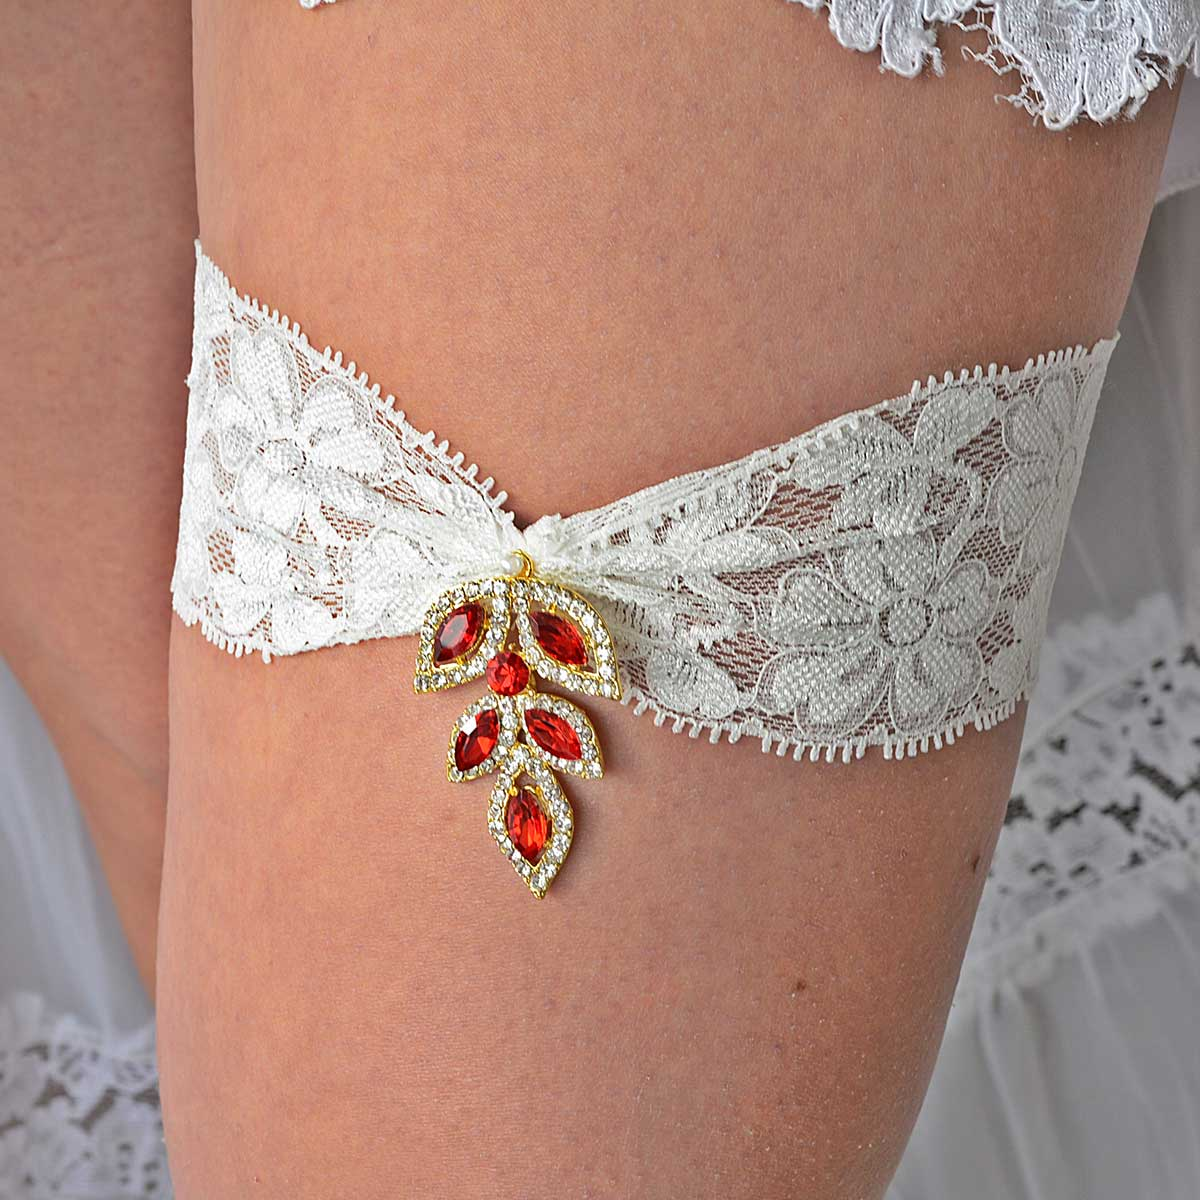 Vintage Gold & Red Rhinestone Bridal Garter With Ivory Lace - Wedding Garter - SuzannaM Designs